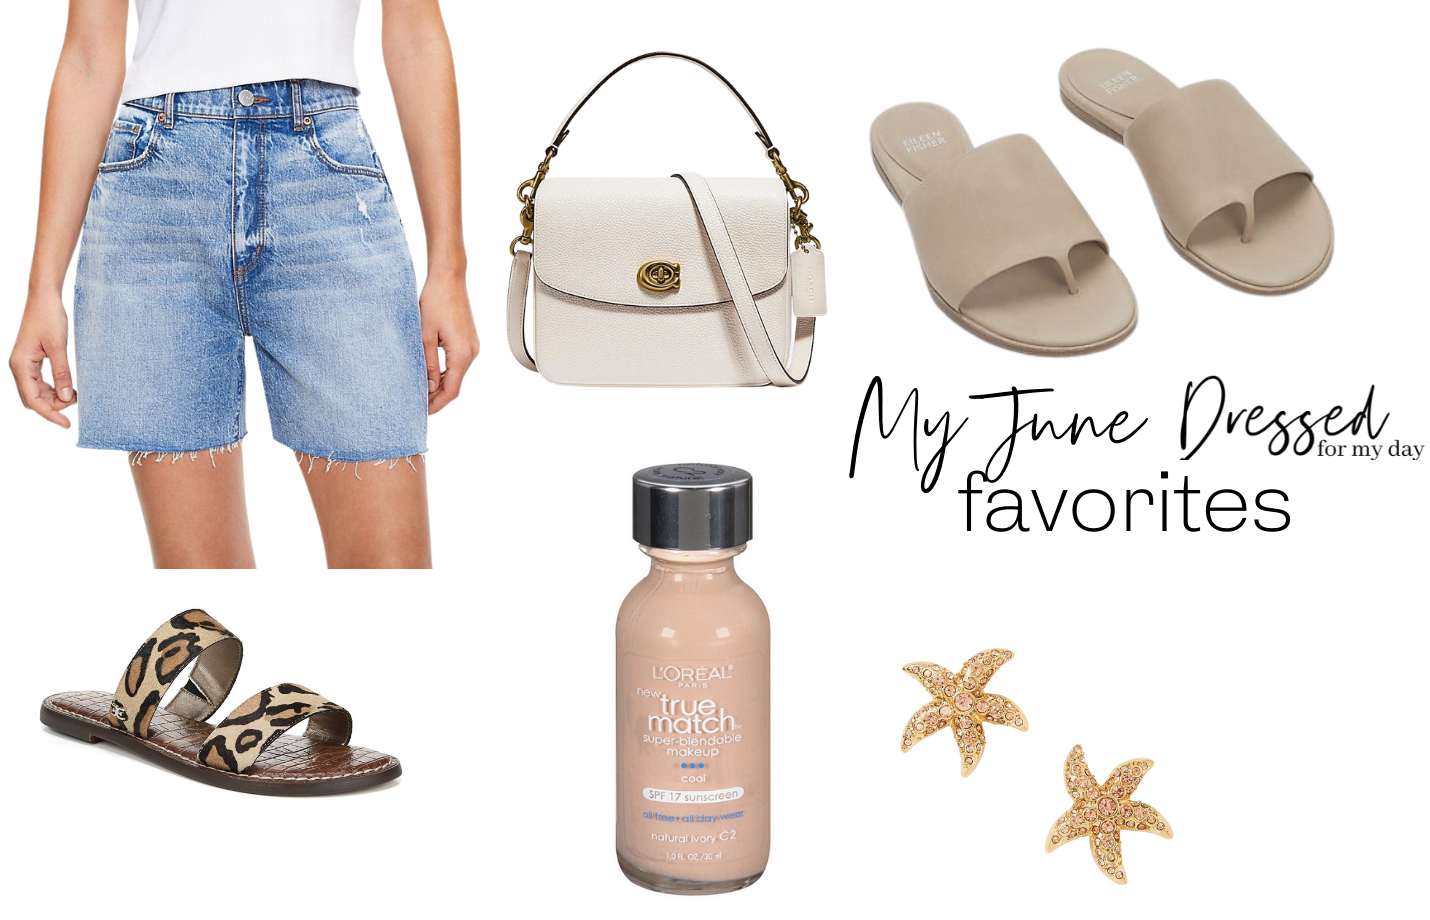 My June Dressed for My Day Favorites